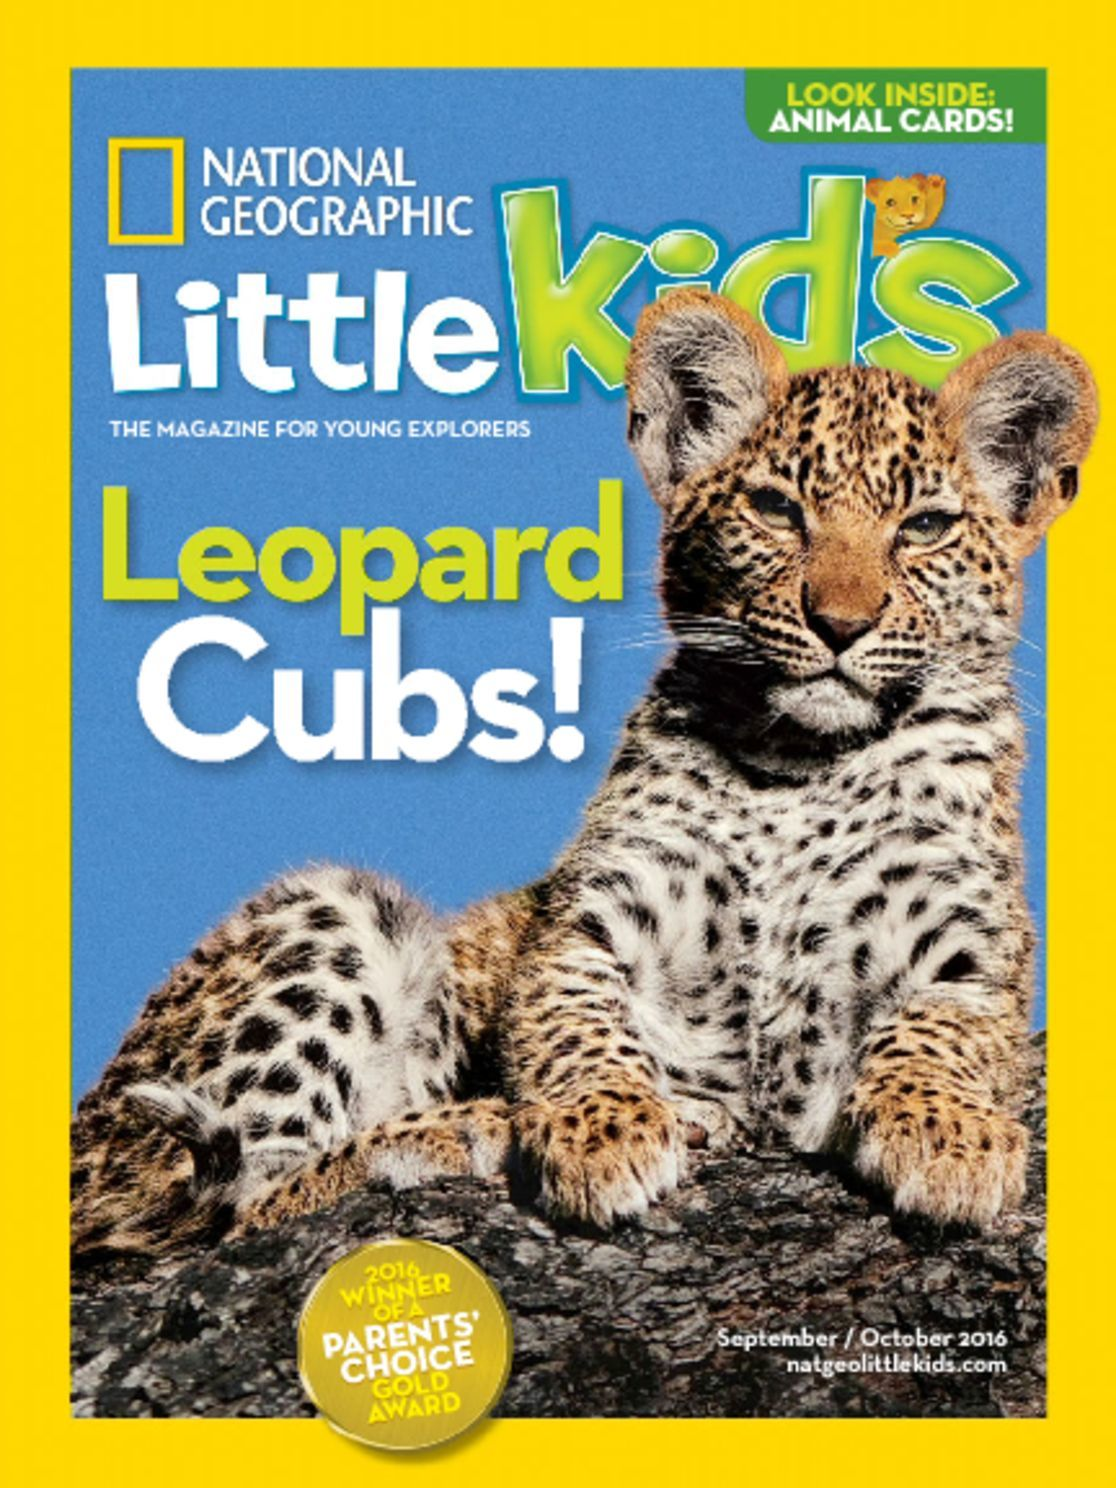 National Geographic Little Kids Magazine - DiscountMags.com